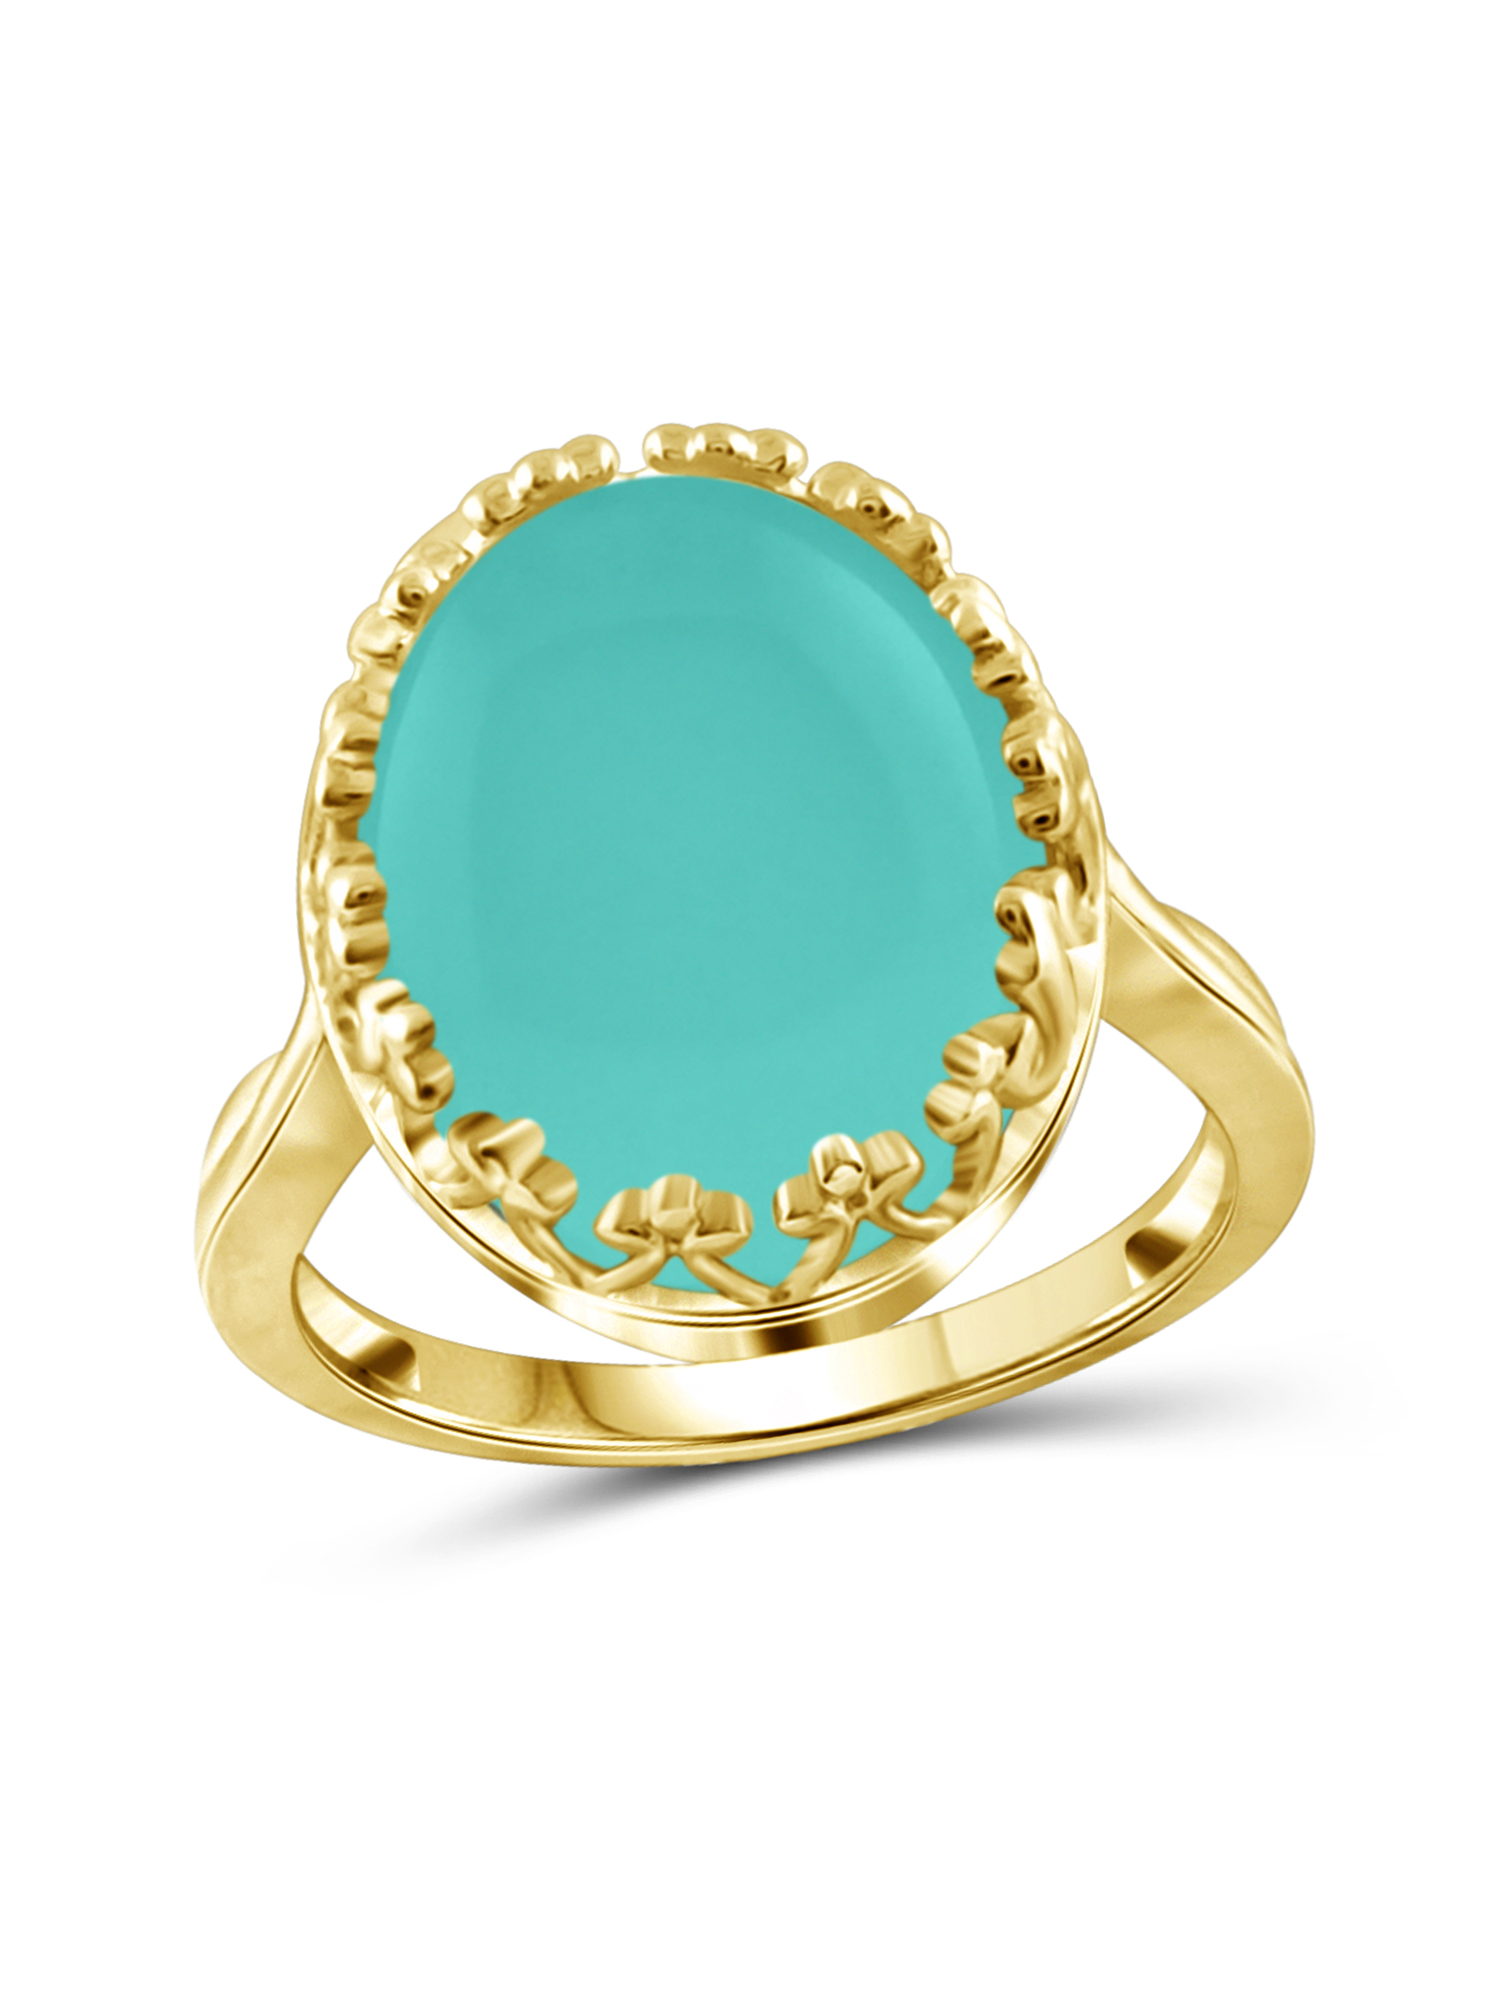 JewelersClub 9-3 4 Carat T.G.W. Chalcedony 14kt Gold over Silver Fashion Ring by JewelersClub